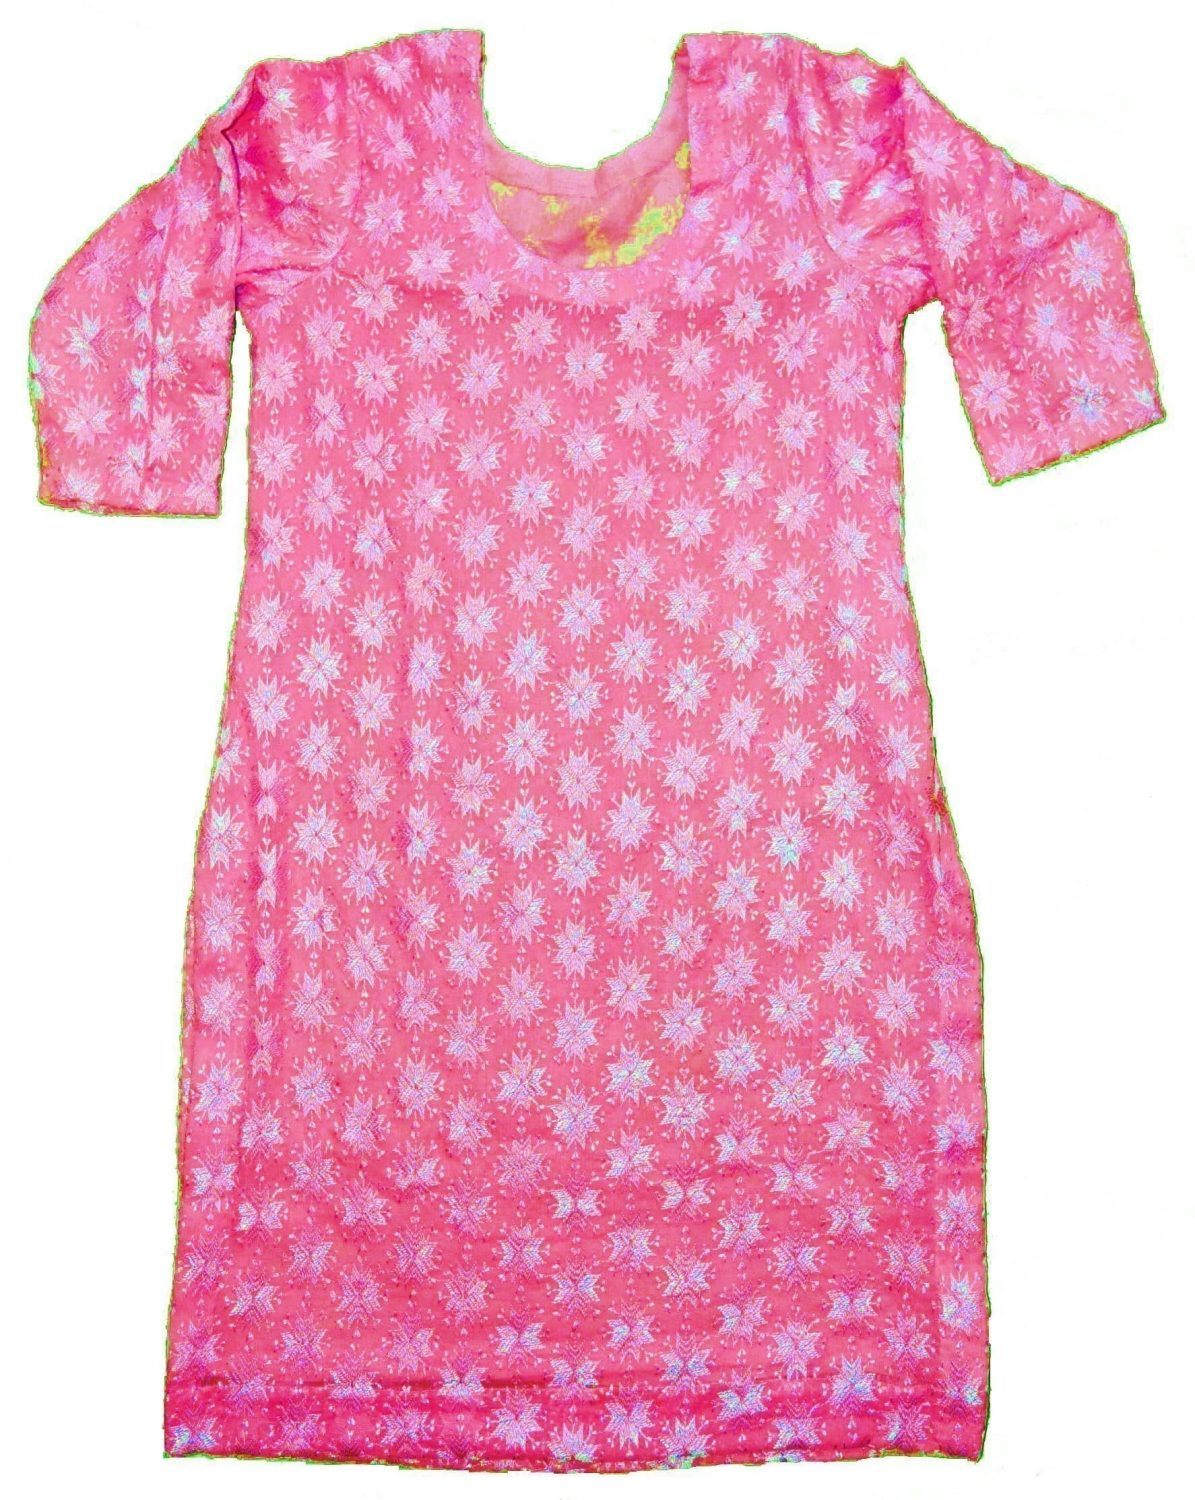 Self Embroidered Phulkari Kurti Custom Stitched - All Colours/Sizes Available 10